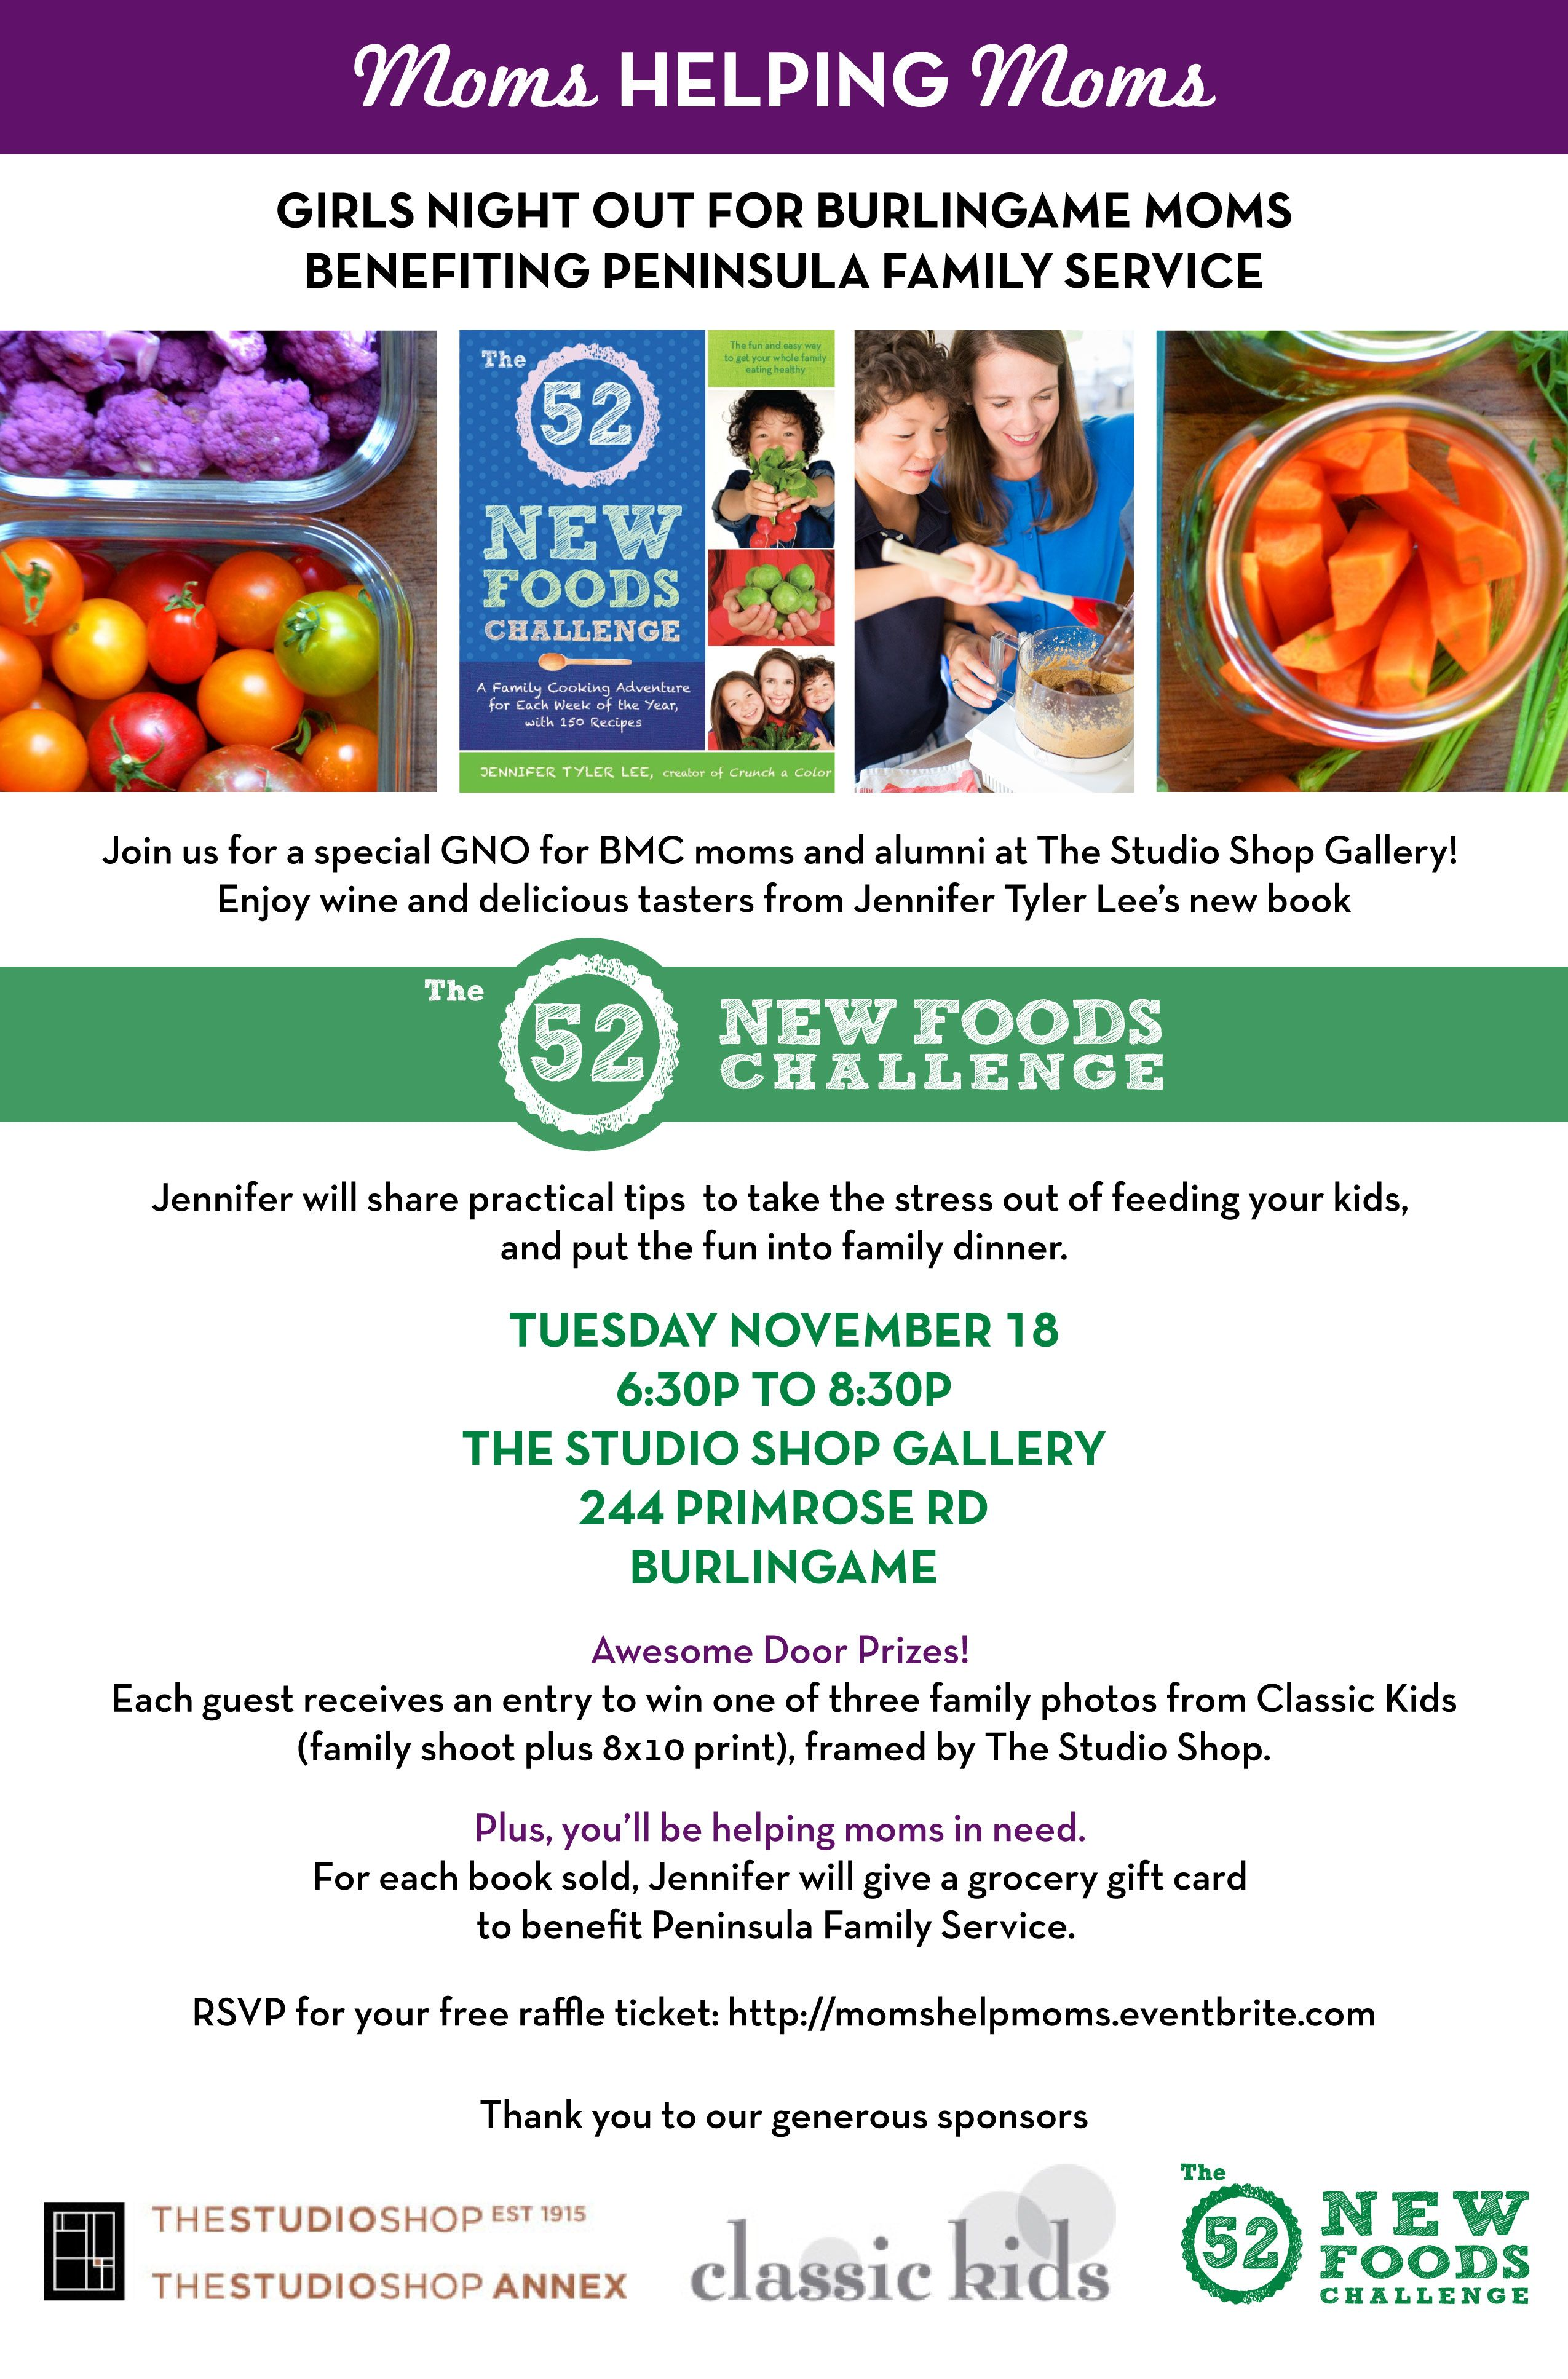 Burligame Mothers' Club Event | The 52 New Foods Challenge